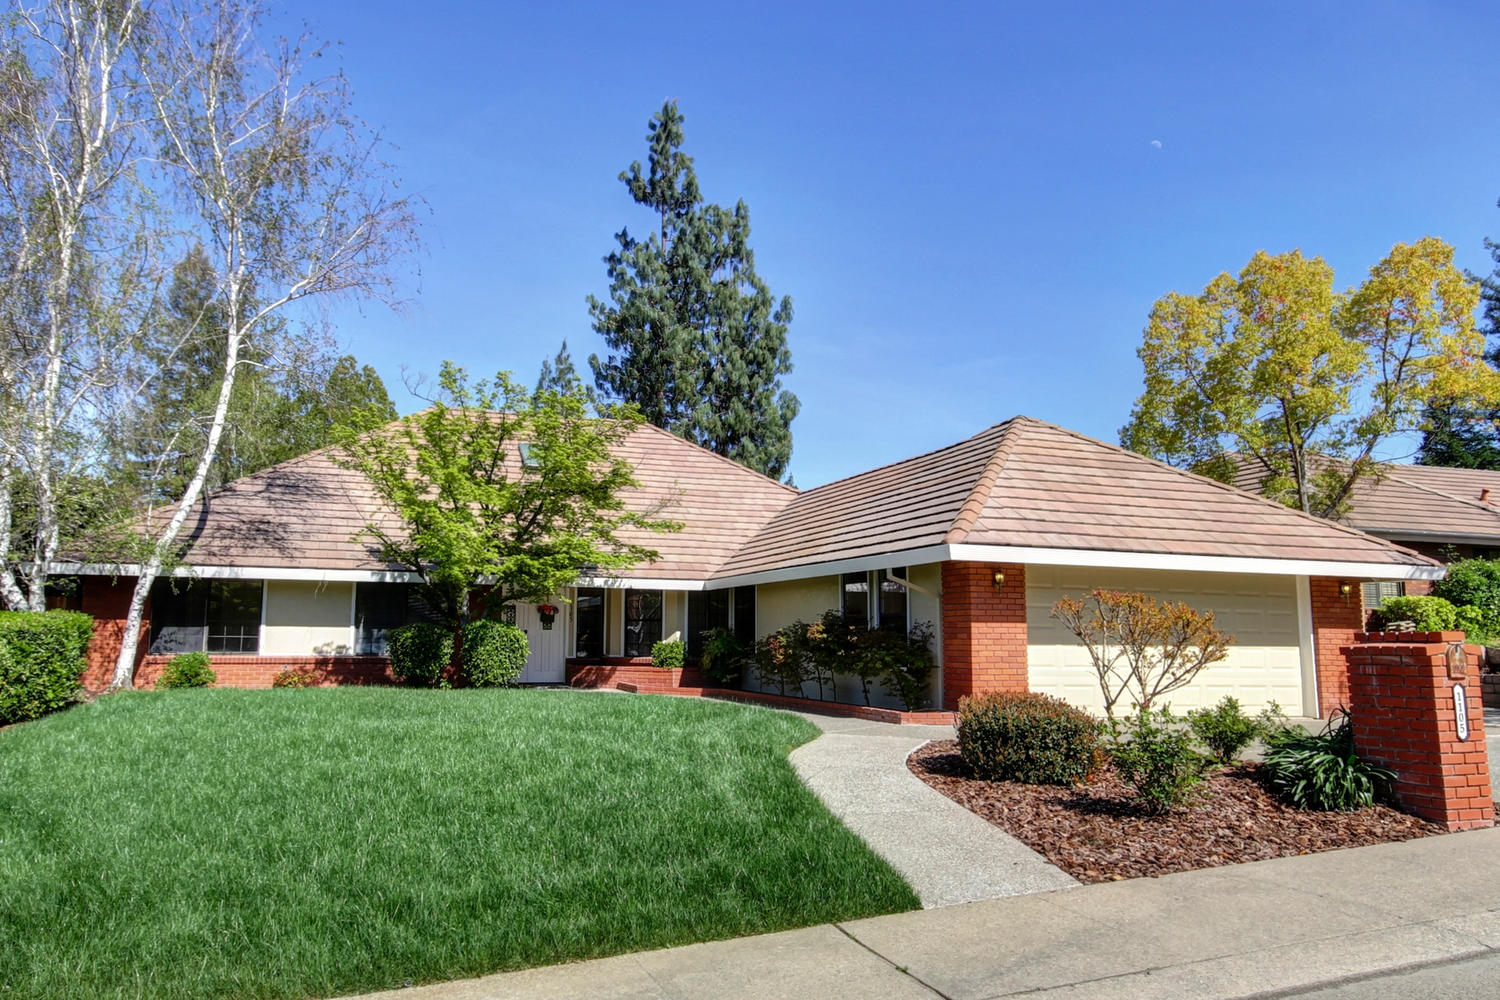 1105 Nob Hill Ct Roseville CA-large-040-37-40-1500x1000-72dpi